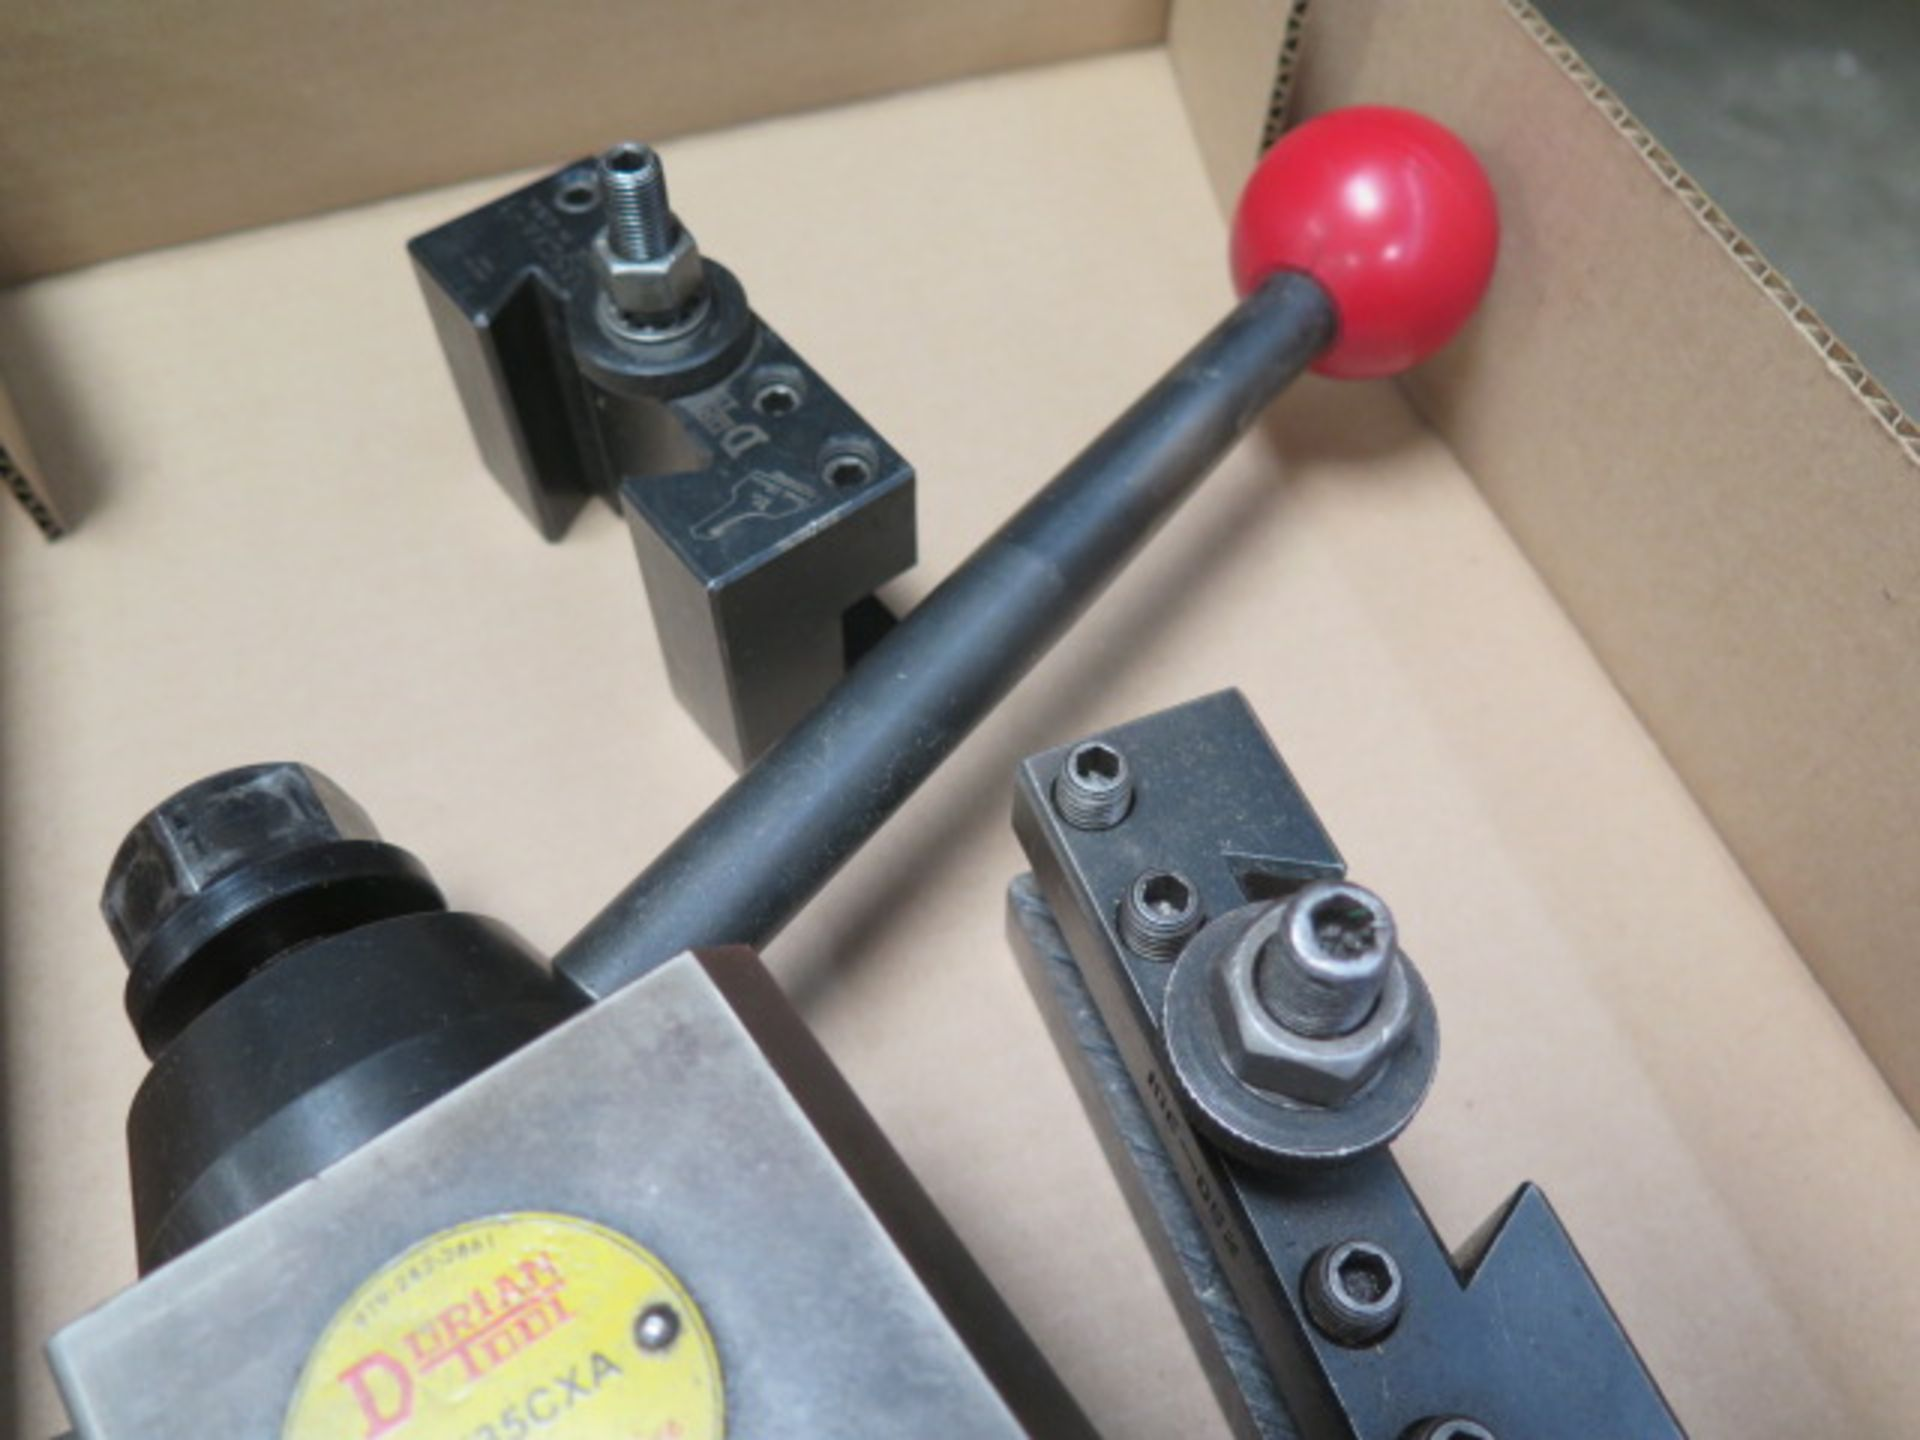 Dorian Tool Post and Tool Holders (SOLD AS-IS - NO WARRANTY) - Image 4 of 4